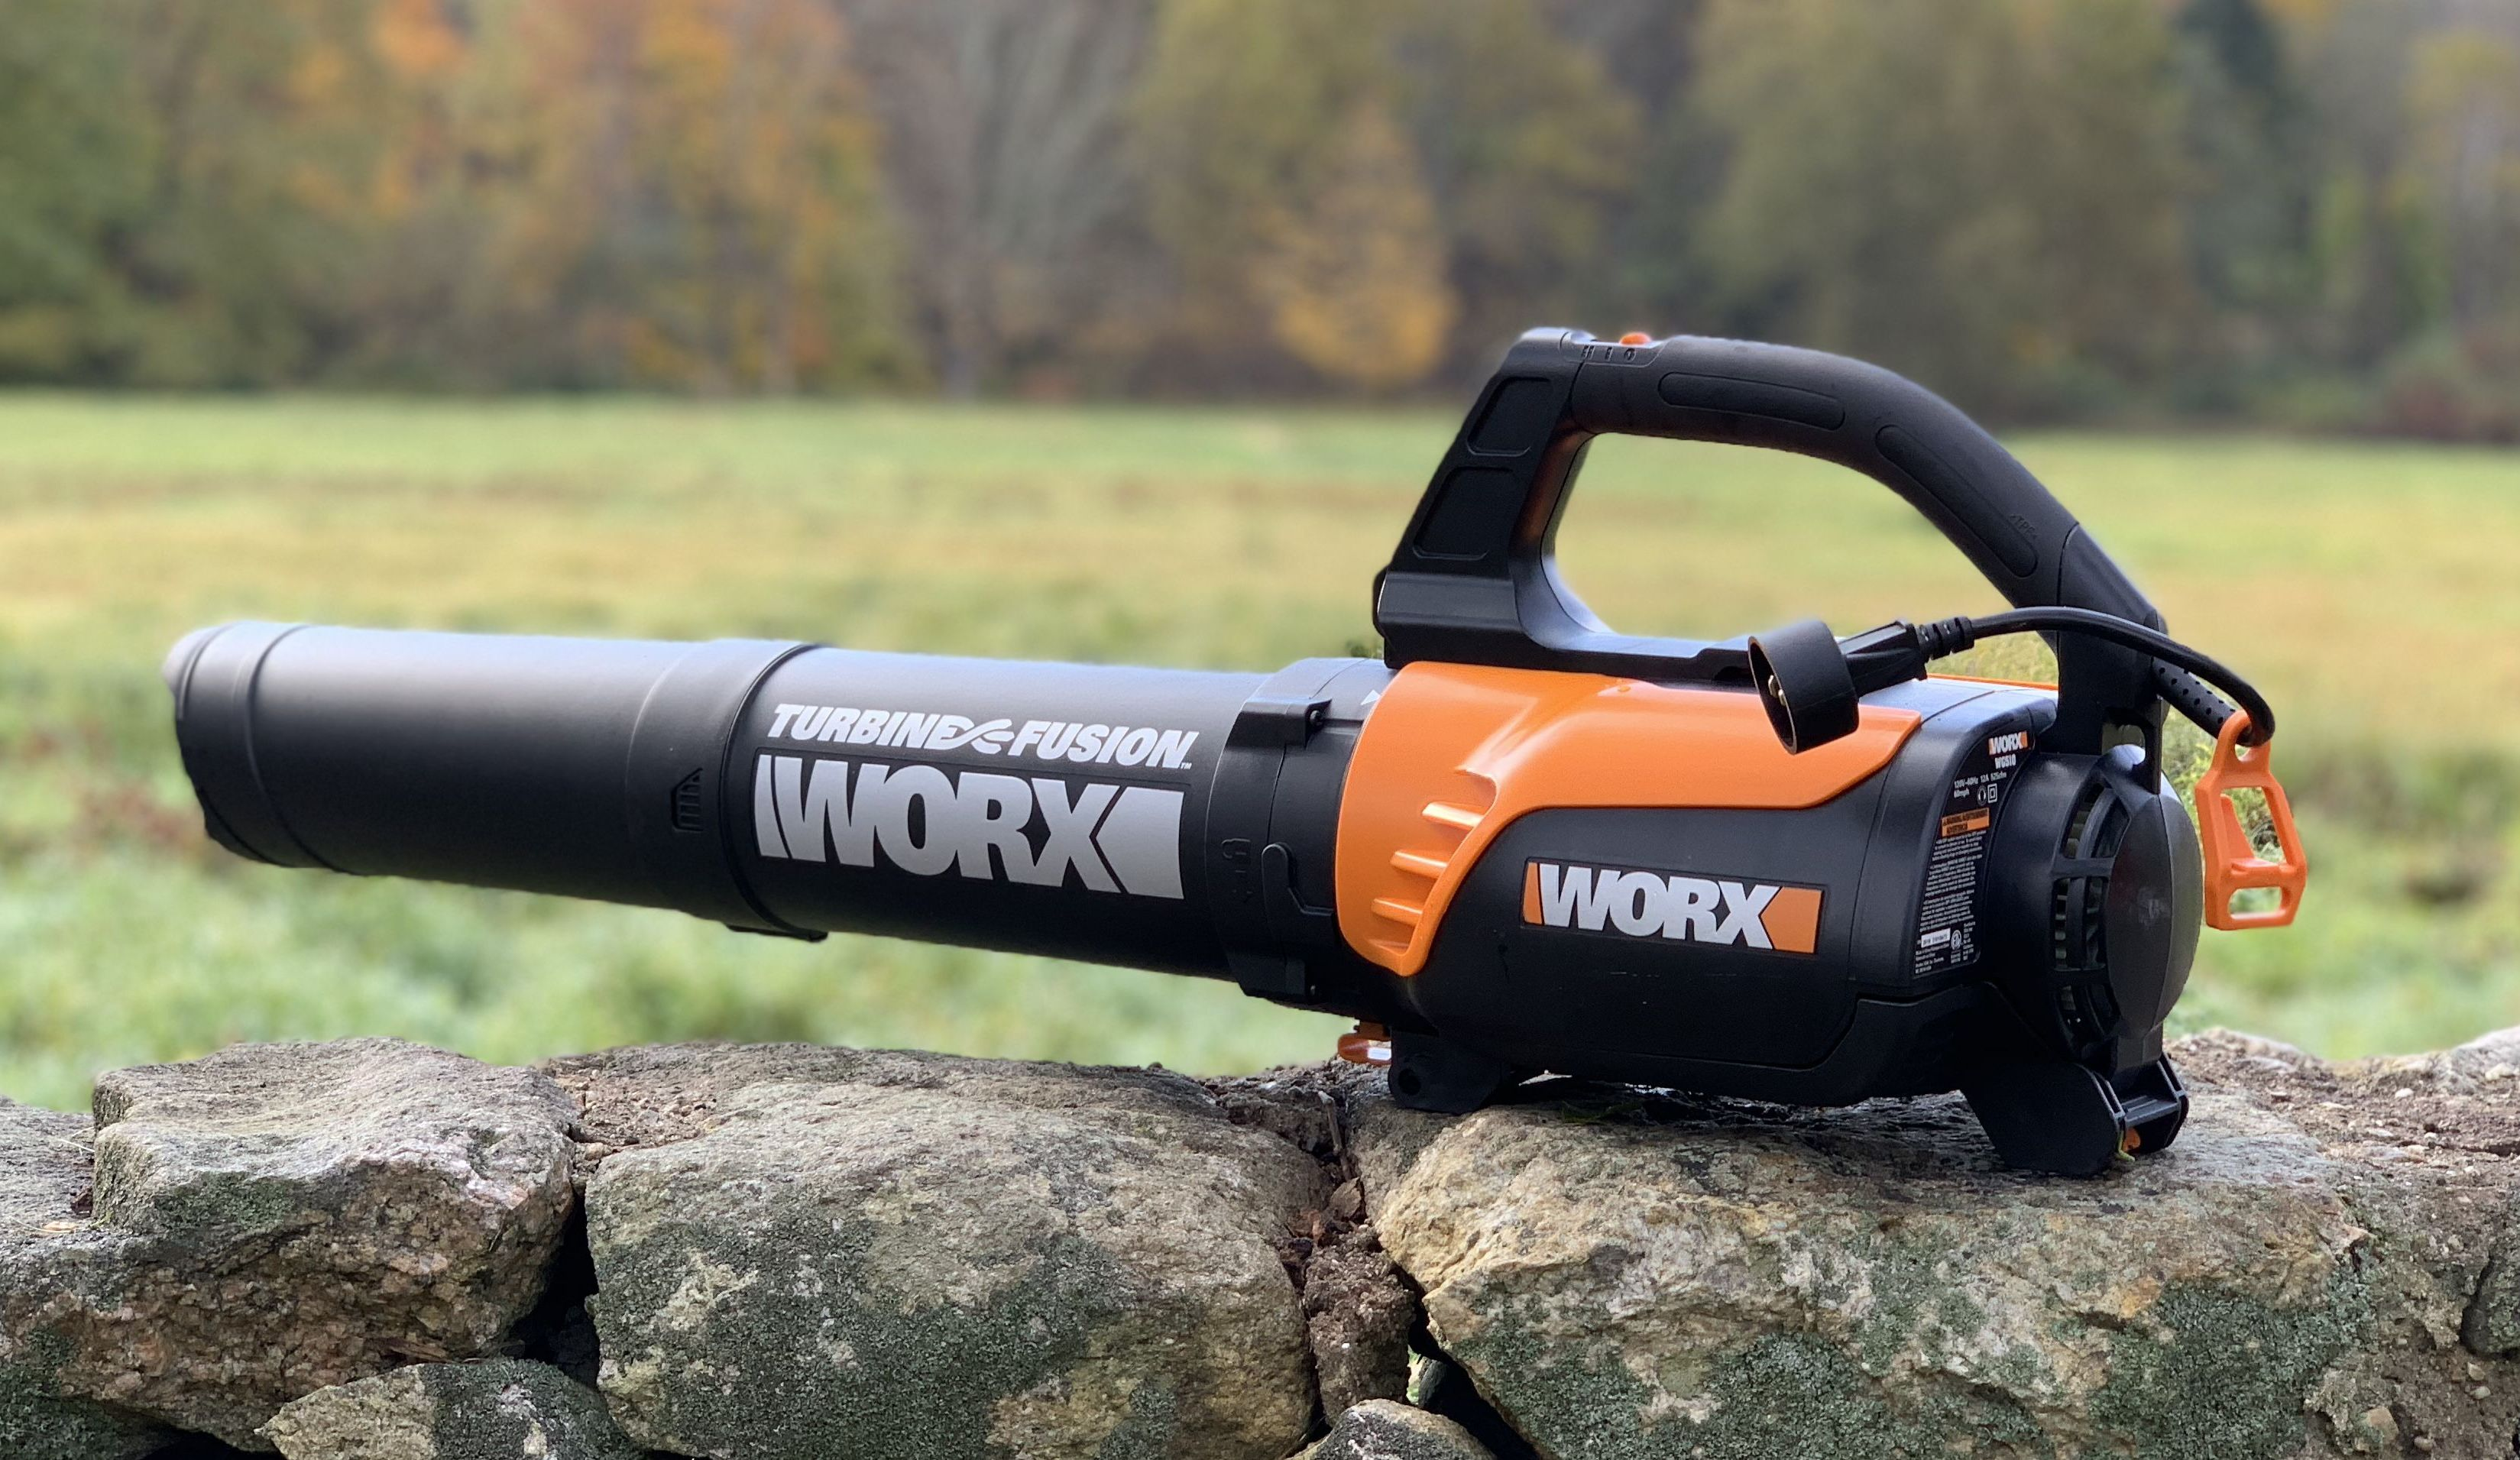 Best Leaf Blower Reviews Gas Powered Blowers Dan Lion Serbaguna Hari Ini 17  Pasar Di Worx 39e0070748